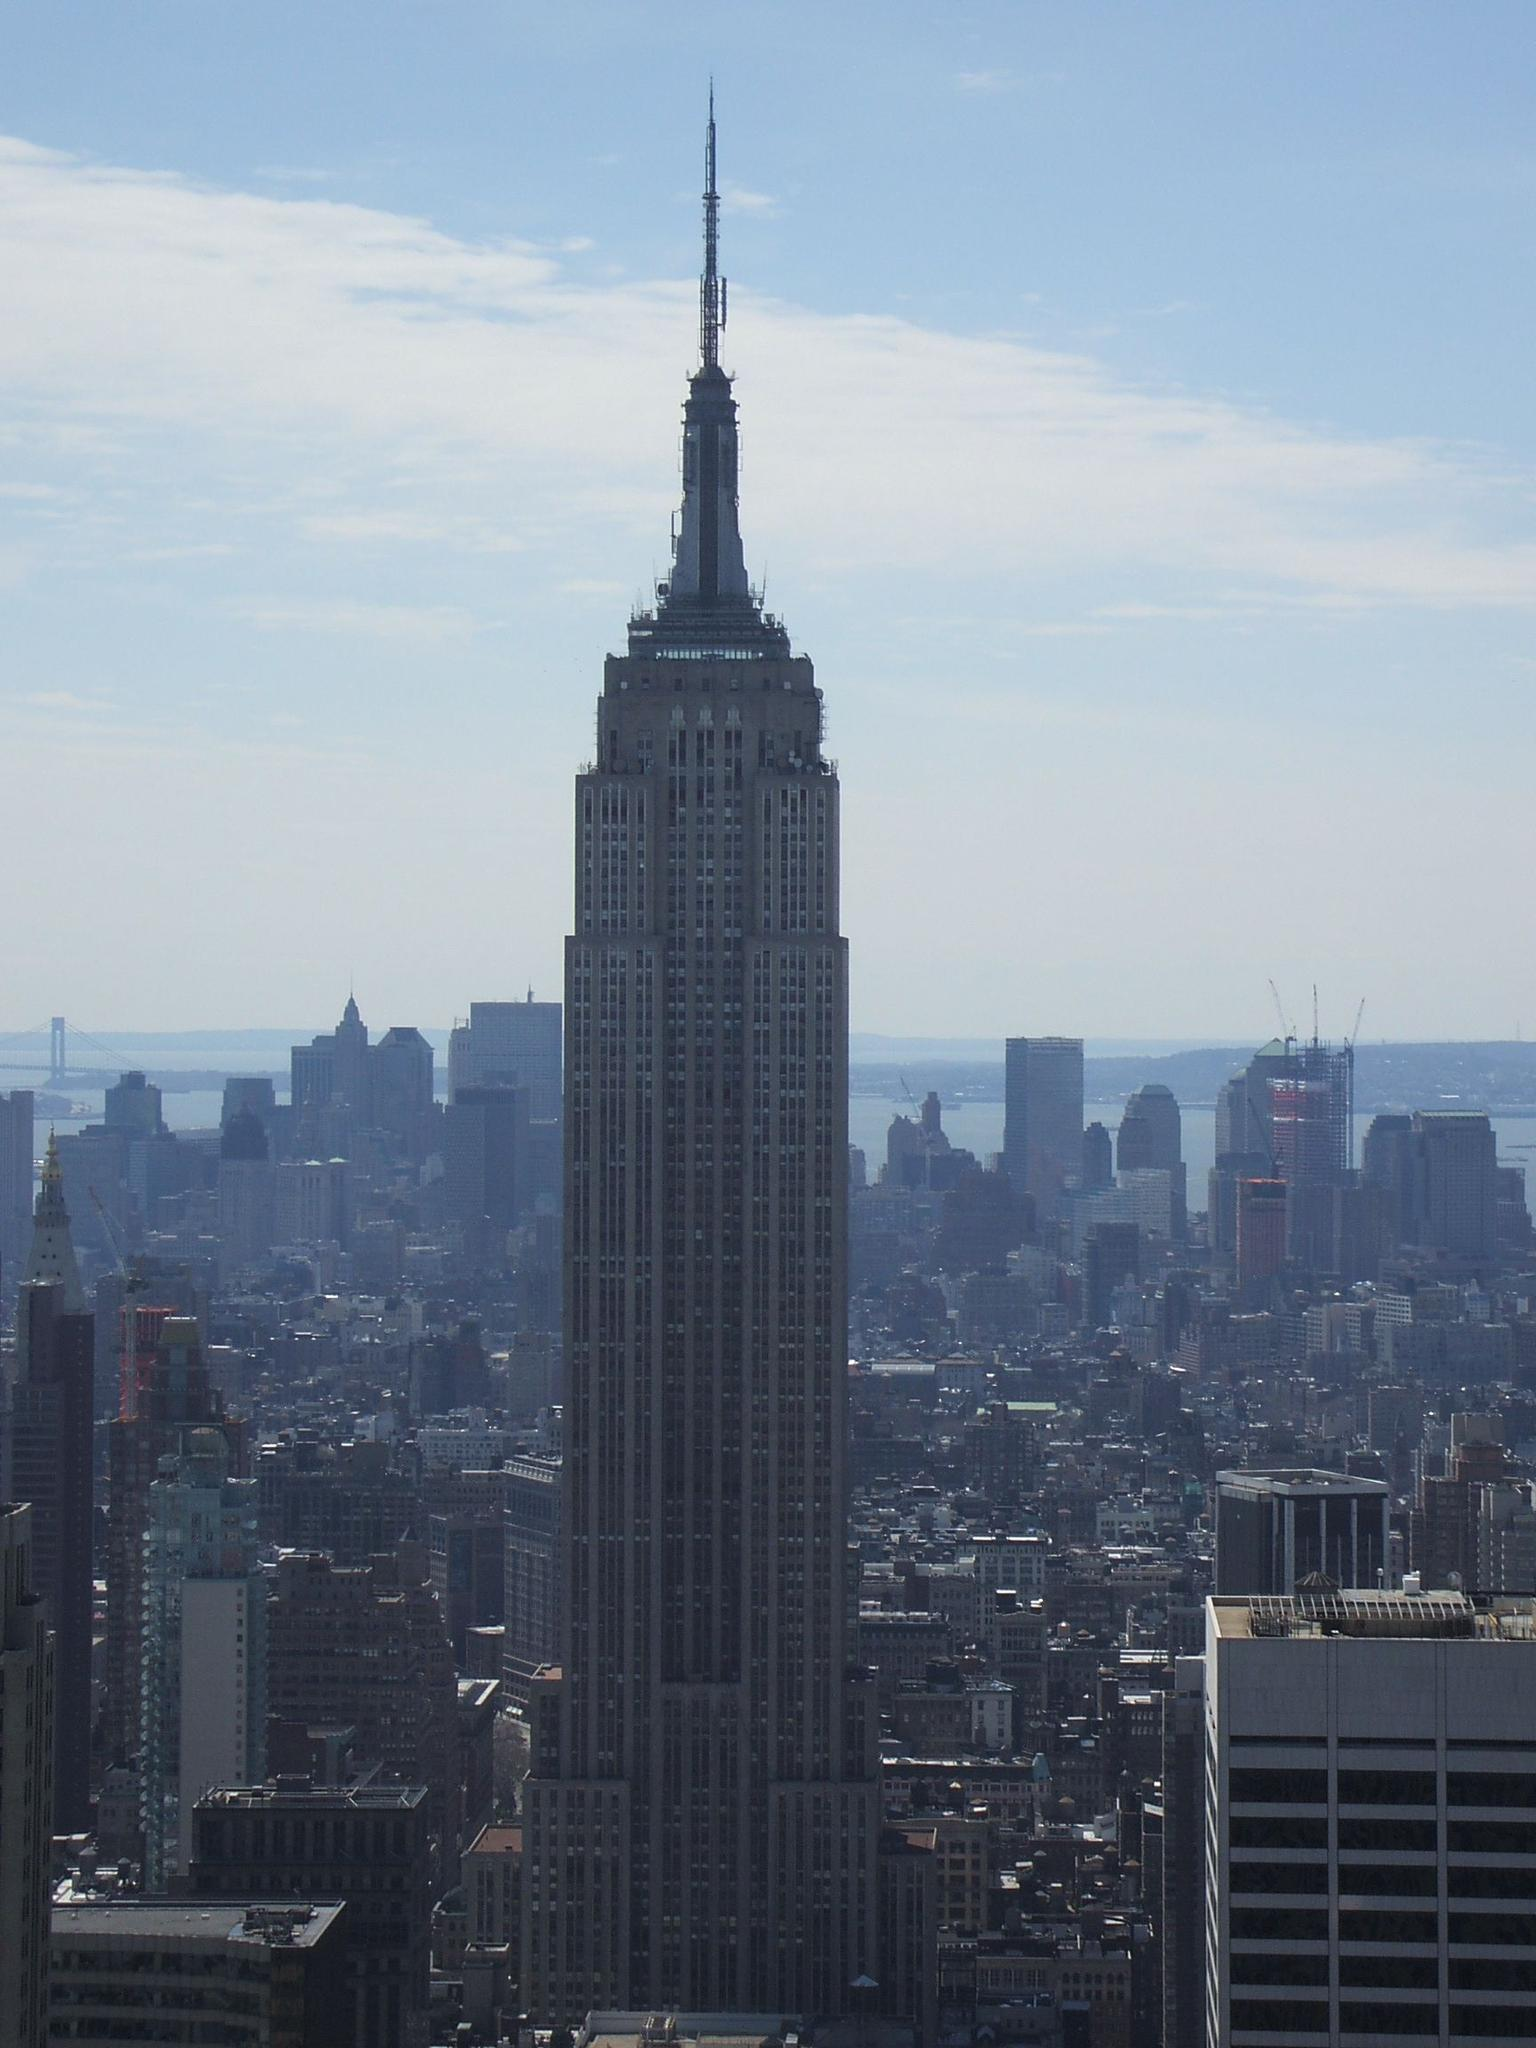 South View from Rockefeller Center